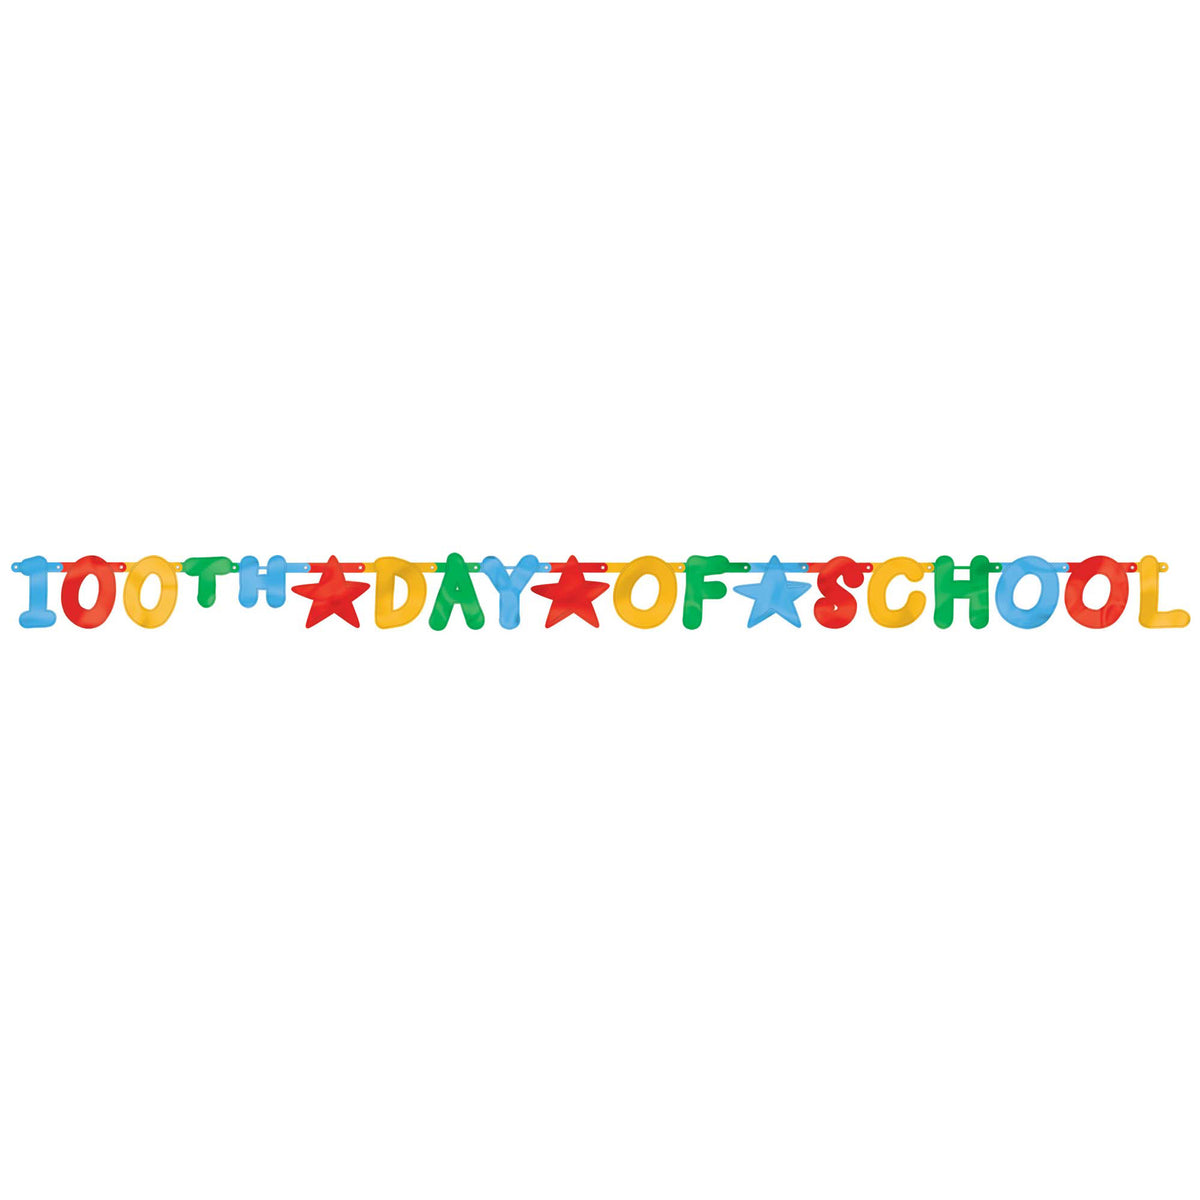 100th Day of School Foil Letter Banner